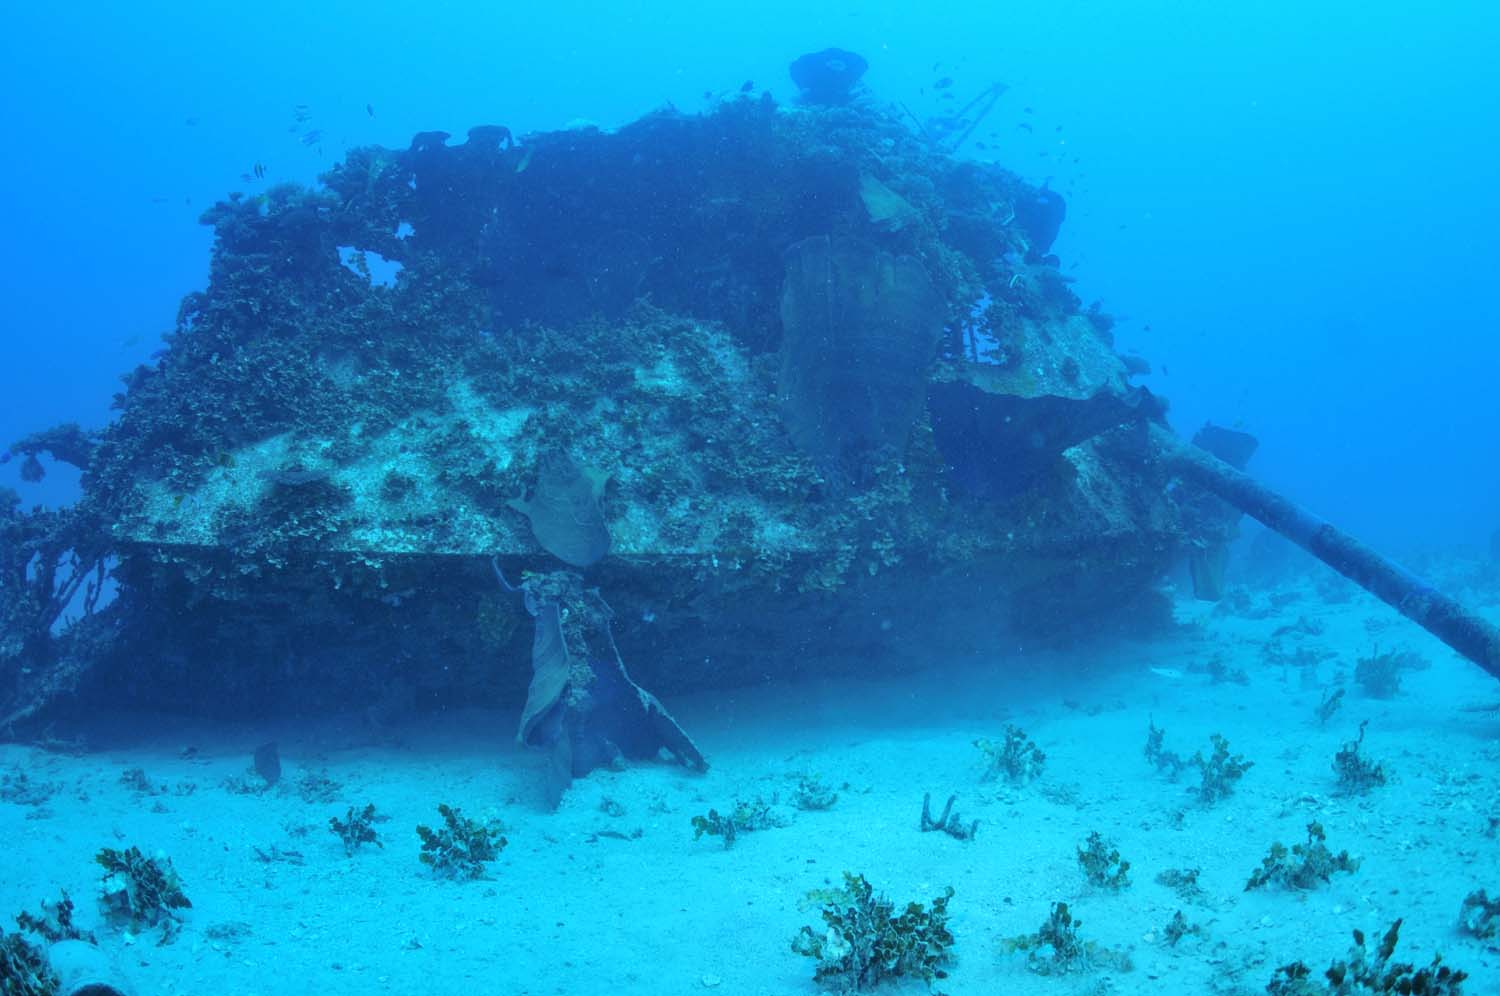 Parts of the float plane are scattered across the seabed